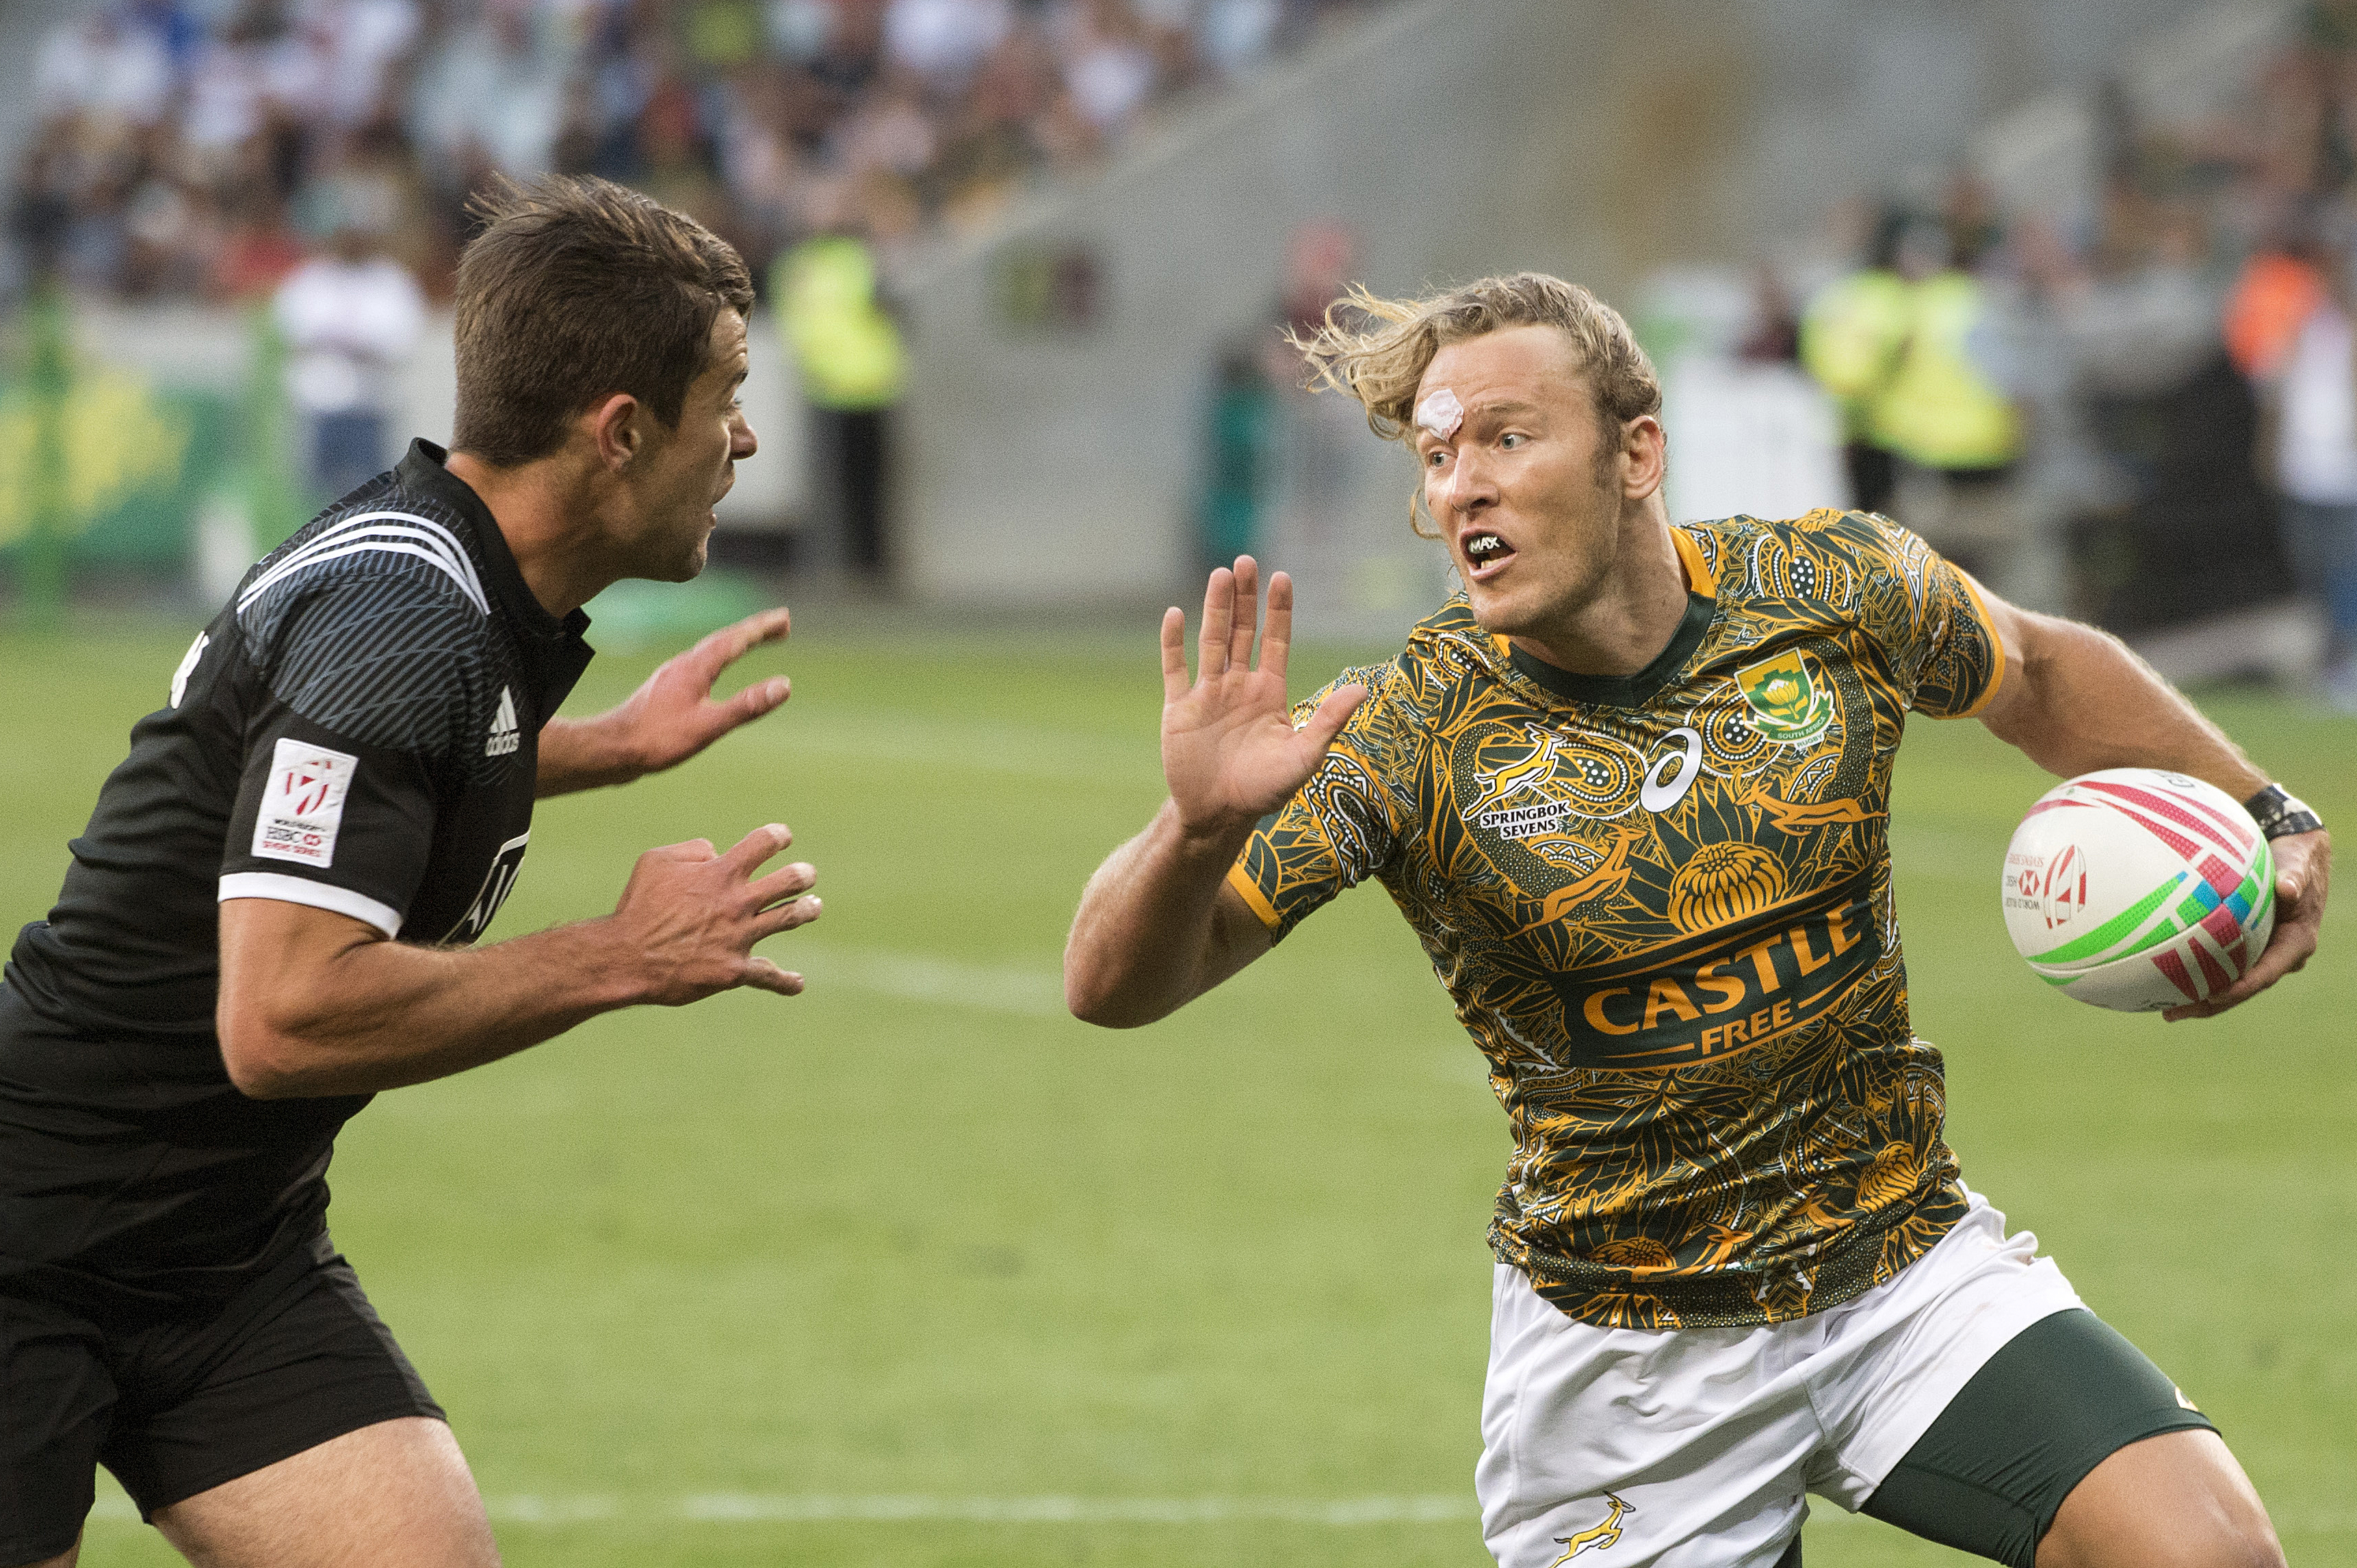 South Africa's Ryan Oosthuizen (C) vies with New Zealand's Andrew Knewstubb during the HSBC World Rugby Sevens tournament bronze final match between South Africa and New Zealand on December 9, 2018 at the Cape Town Stadium in Cape Town.